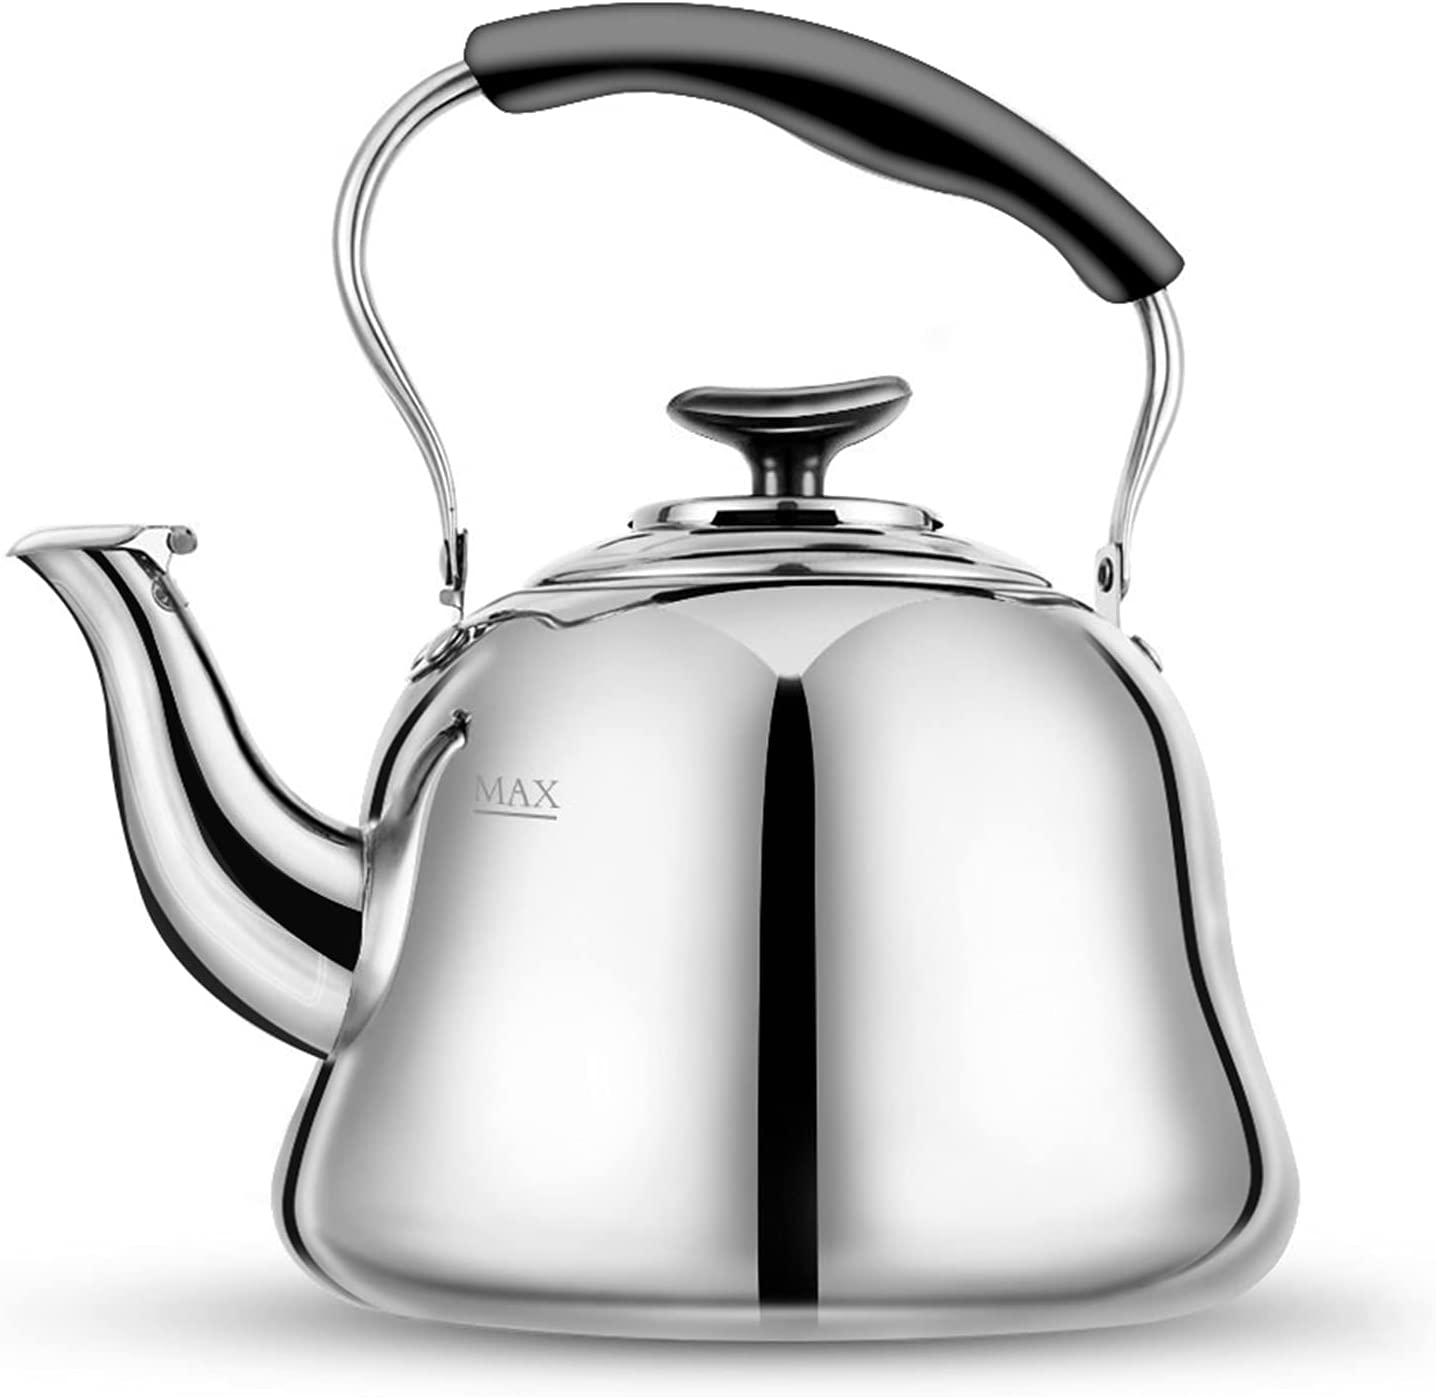 Tea Year-end annual account Kettle OFFicial Stovetop Whistling Teapot Teakettle Stainless Steel